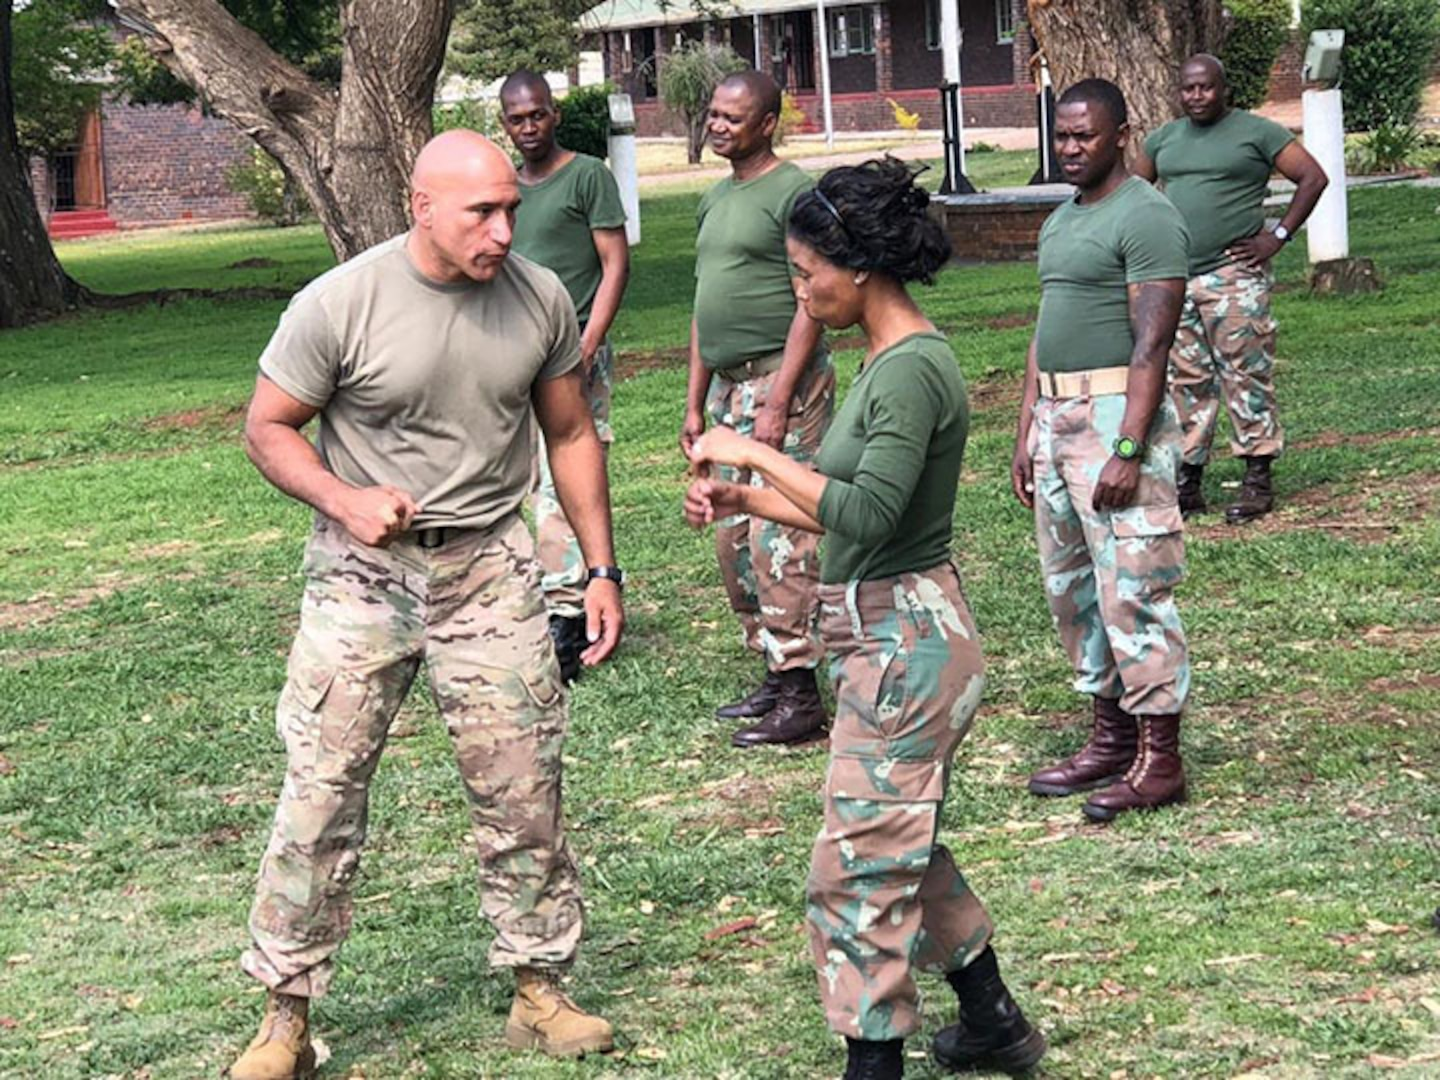 New York Army National Guard Master Sgt. Luis Barsallo, a certified hand-to-hand tactics instructor, demonstrates a move to members of the South African National Defense Forces during an  exchange visit on October 10, 2018. Soldiers from the New York Army National Guard took  part in an exchange program at the South African National Defense Forces Military Police School during an exchange visit there on Oct. 10-11, 2018.